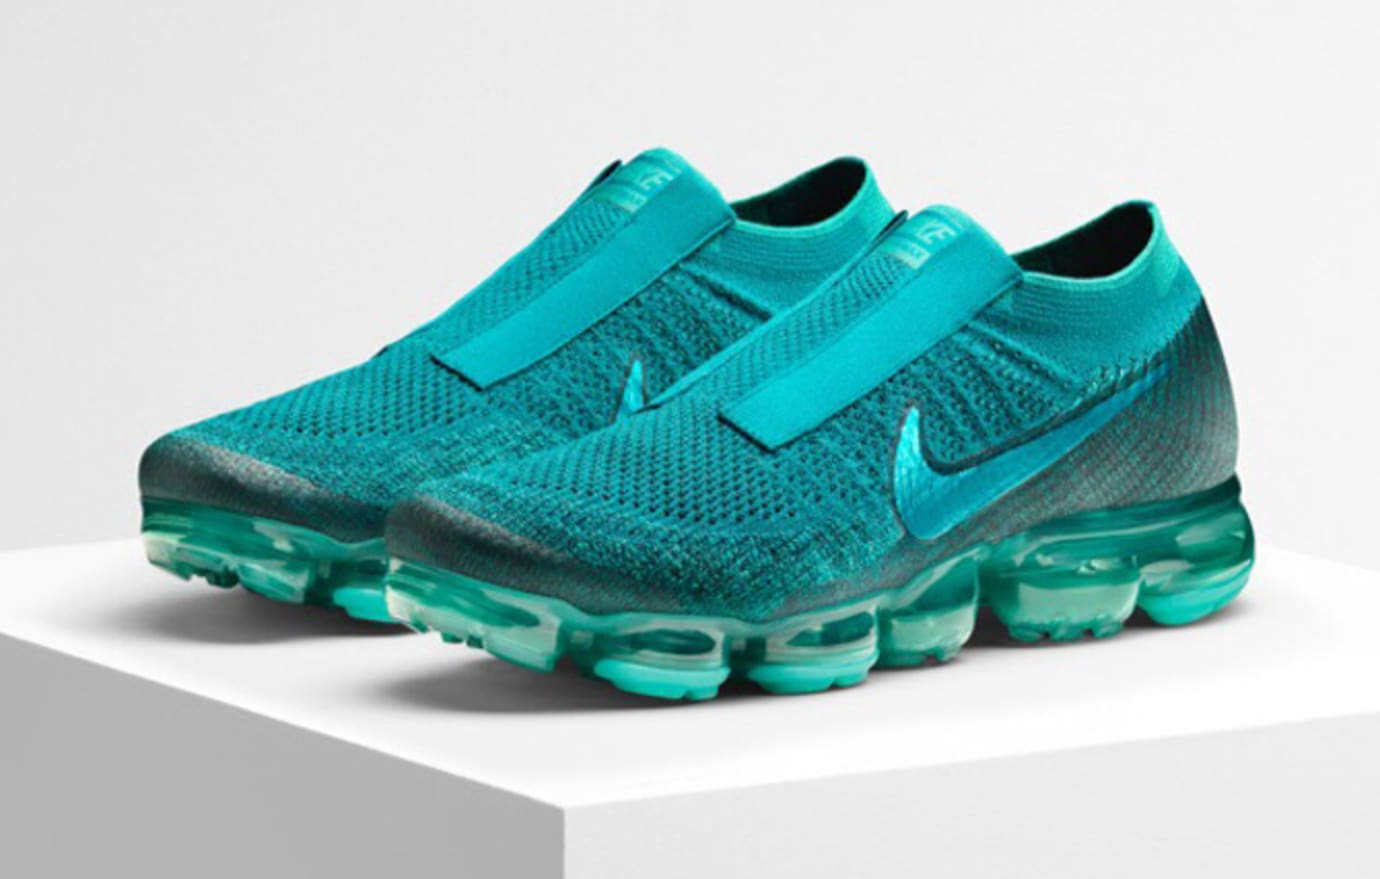 premium selection fbff1 fcce8 Image via Nike Nike Air VaporMax Jewel Pack Green